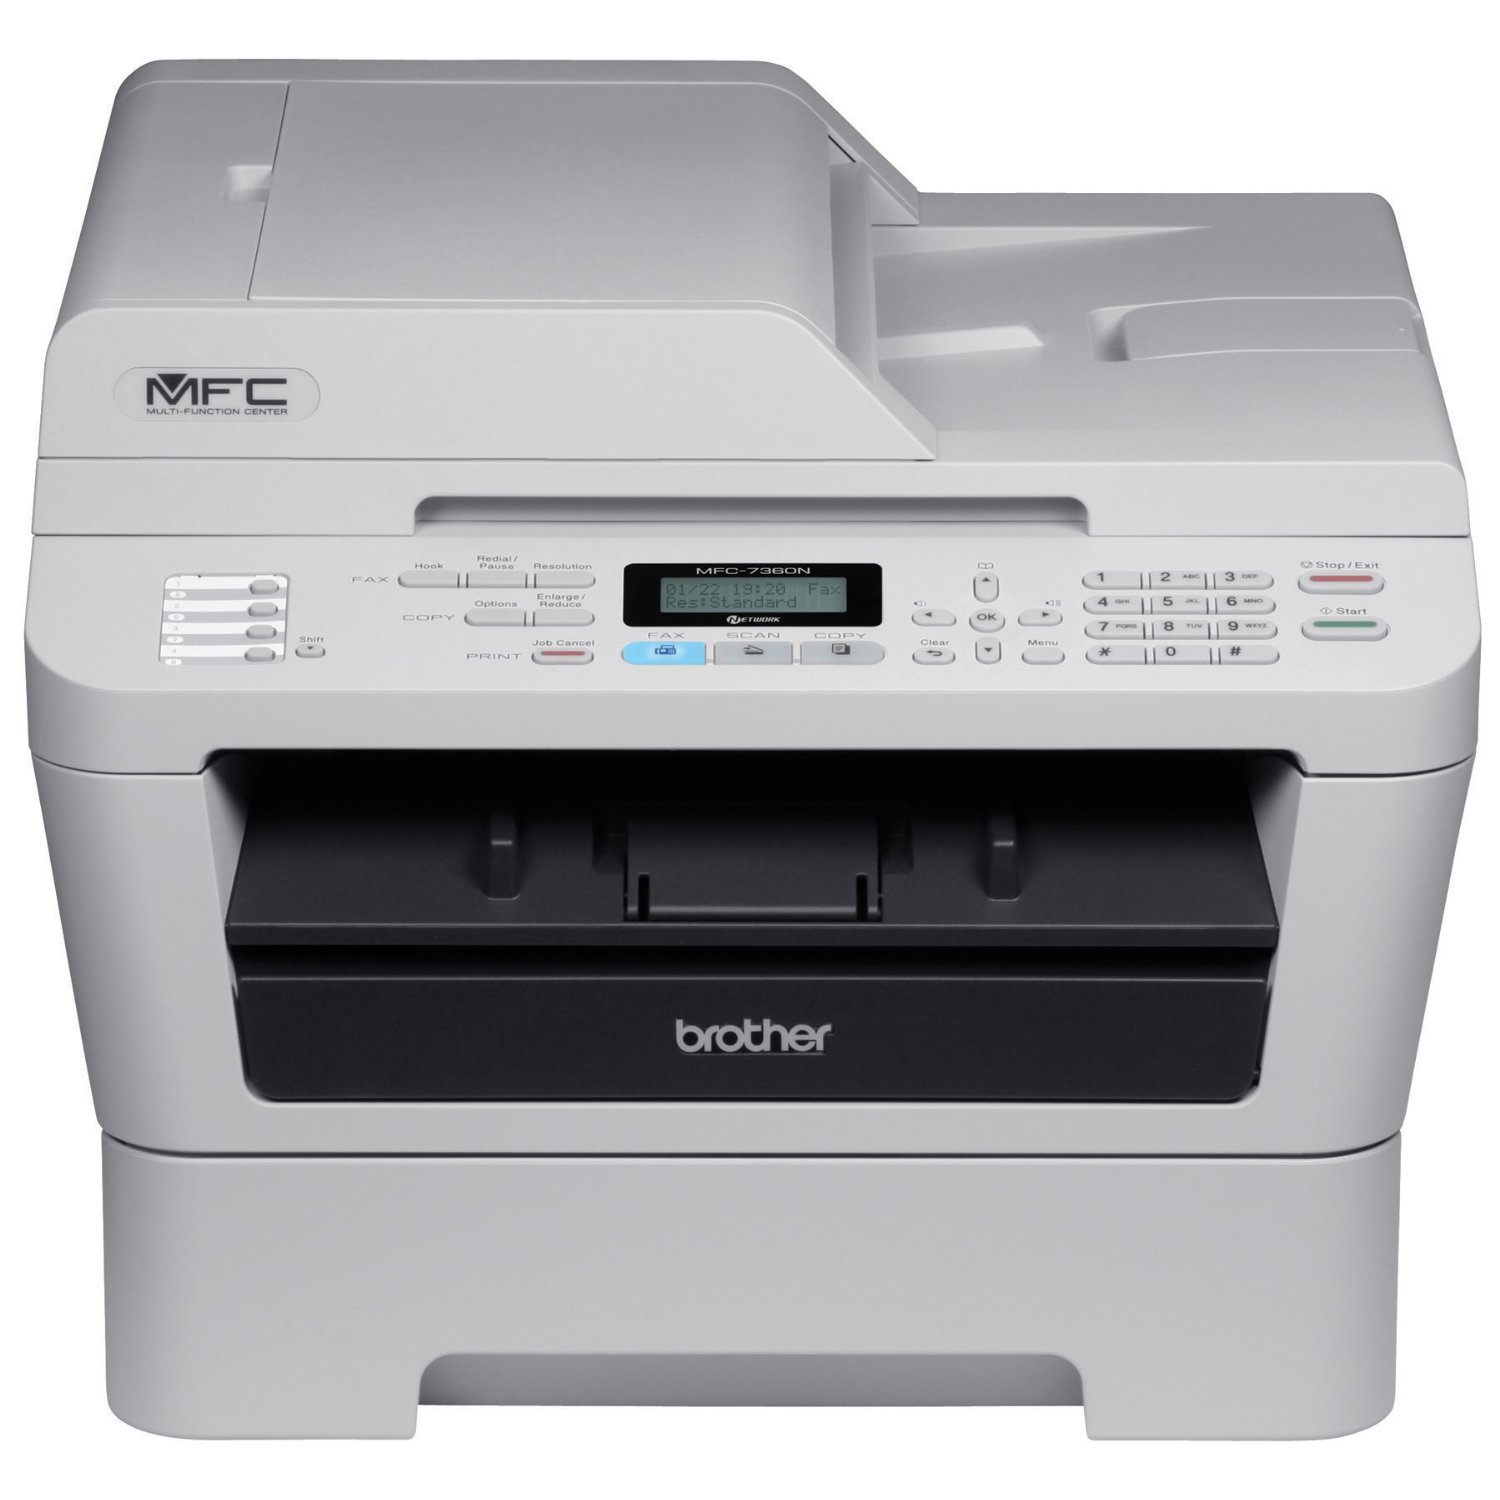 Brother MFC-7360N All-in-One Printer - TechTack